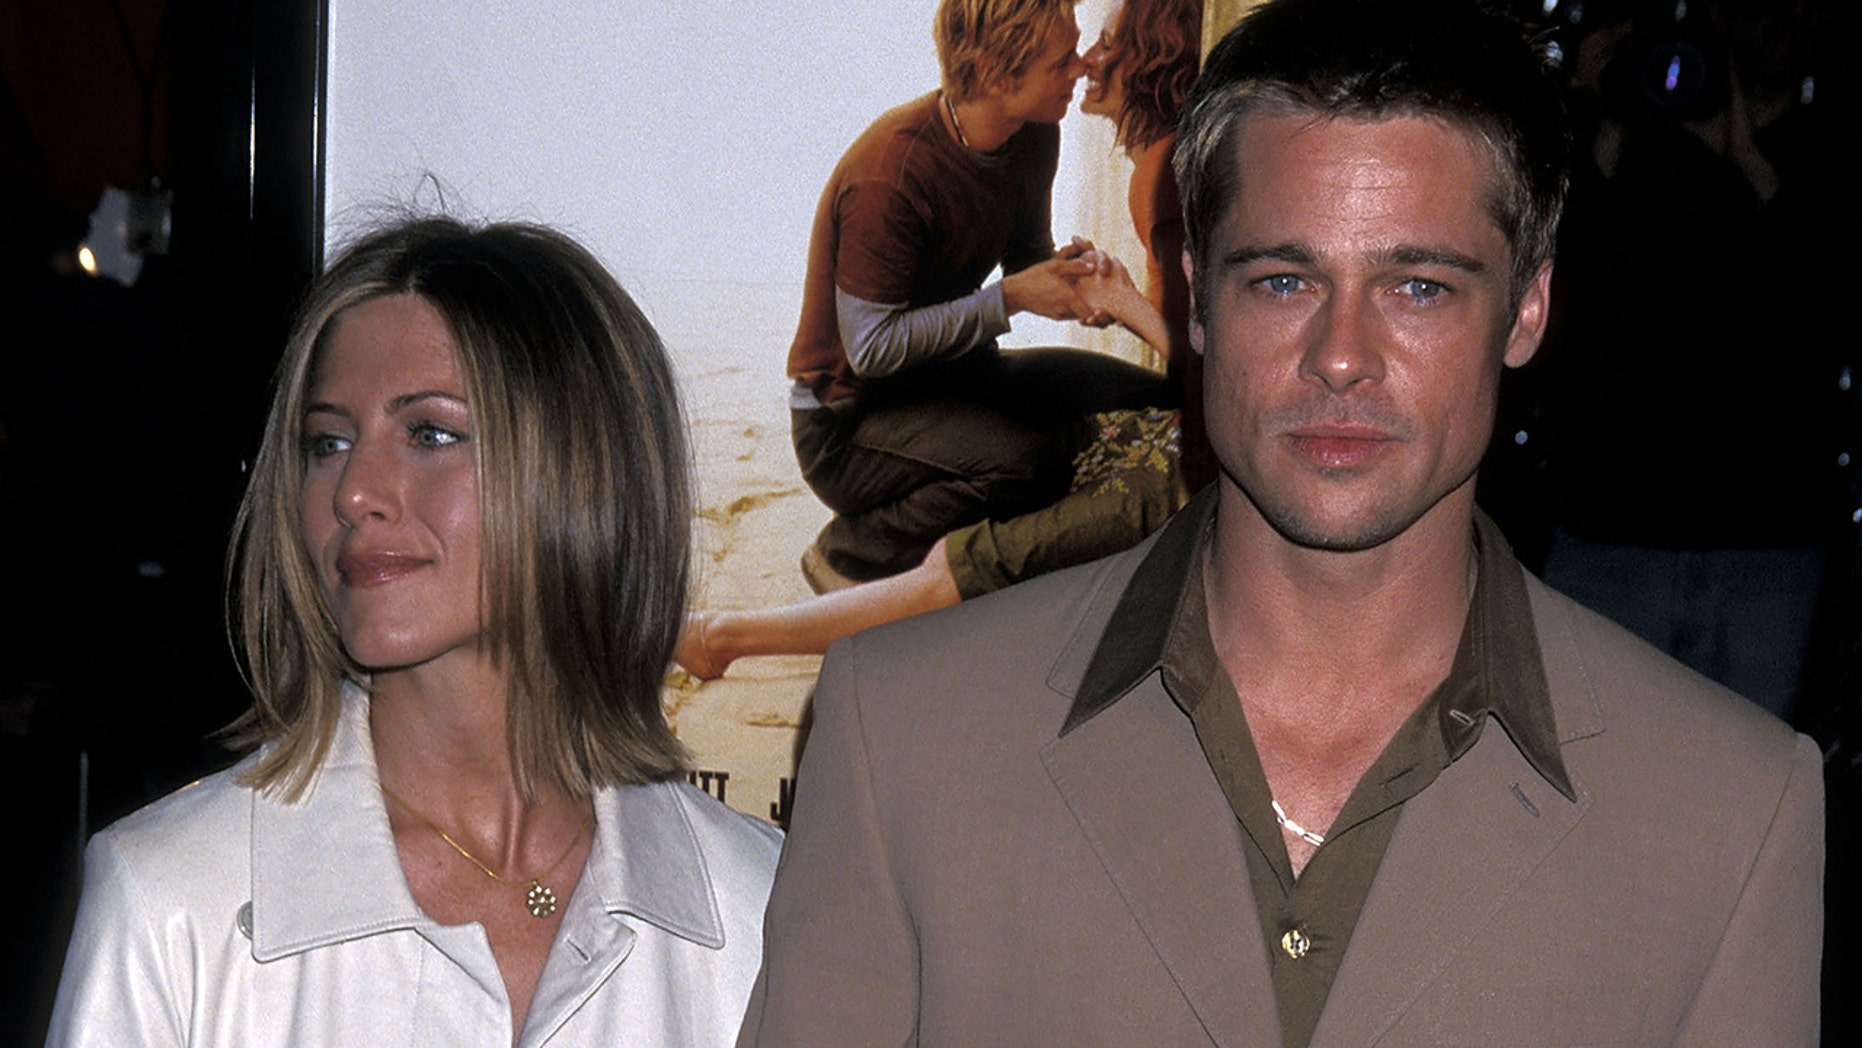 Brad Pitt made an appearance at ex-wife Jennifer Aniston's 50th birthday party.